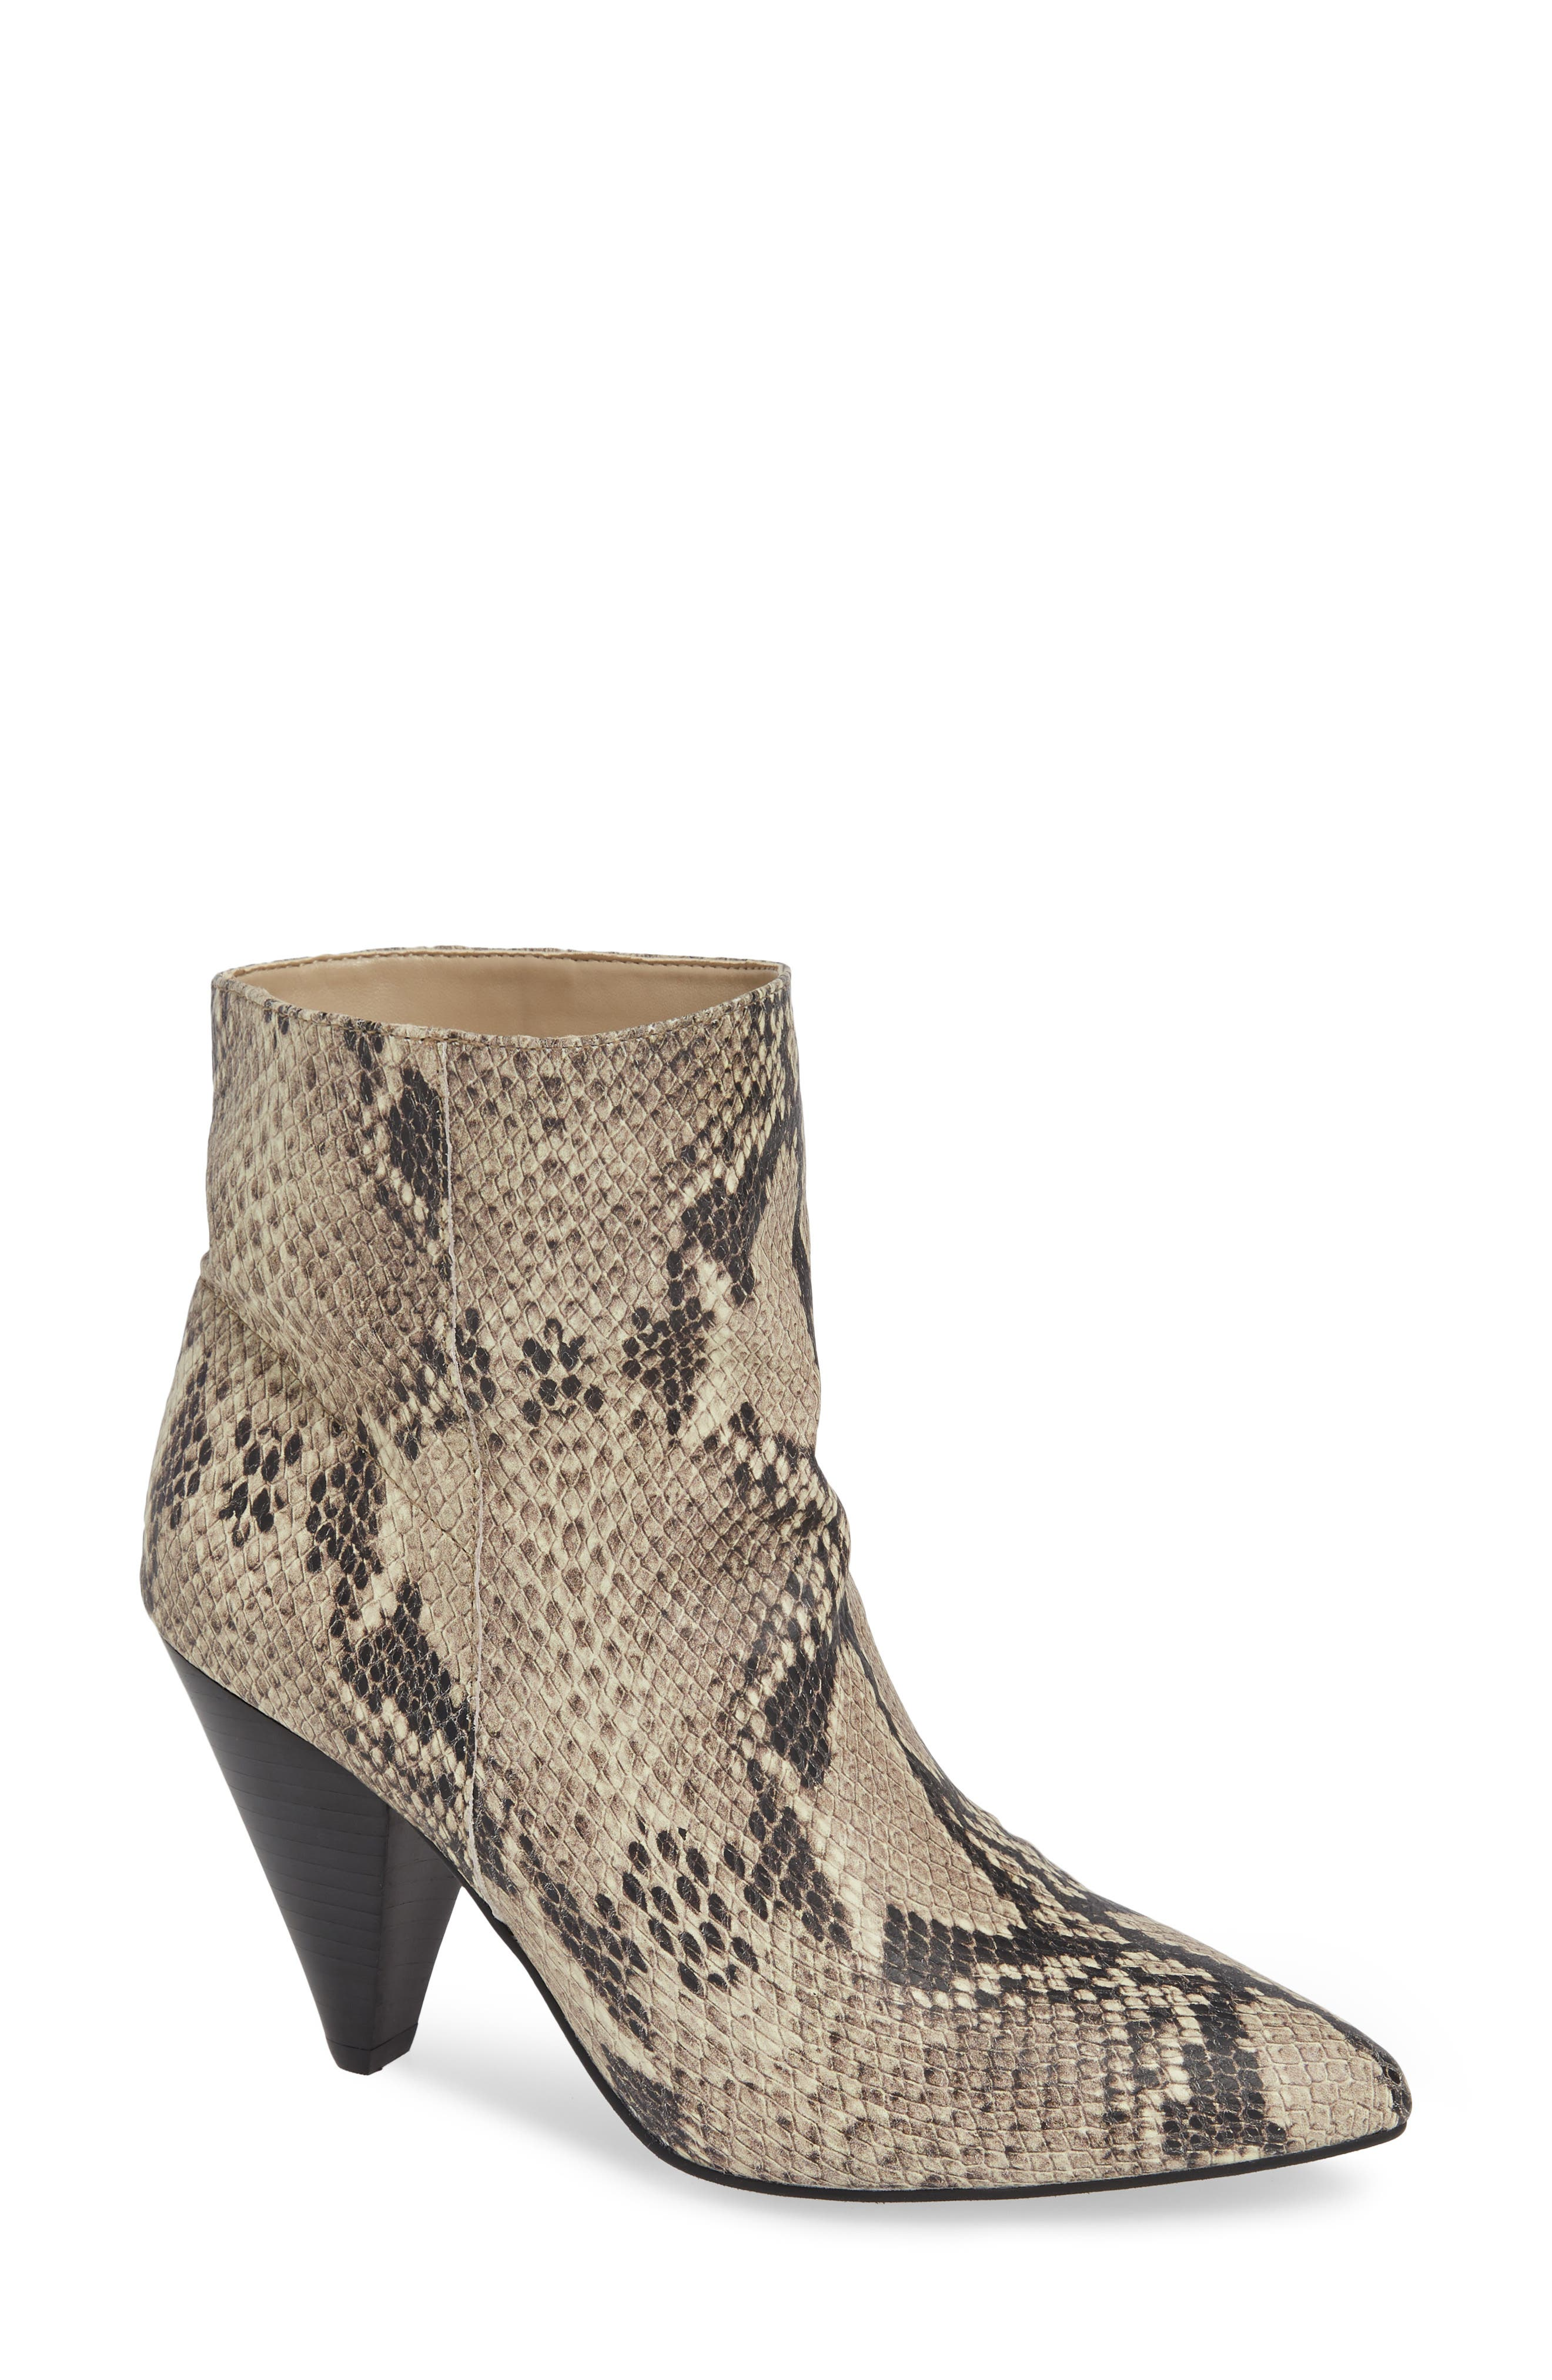 Scope Bootie,                         Main,                         color, PRINTED NATURAL SNAKE LEATHER